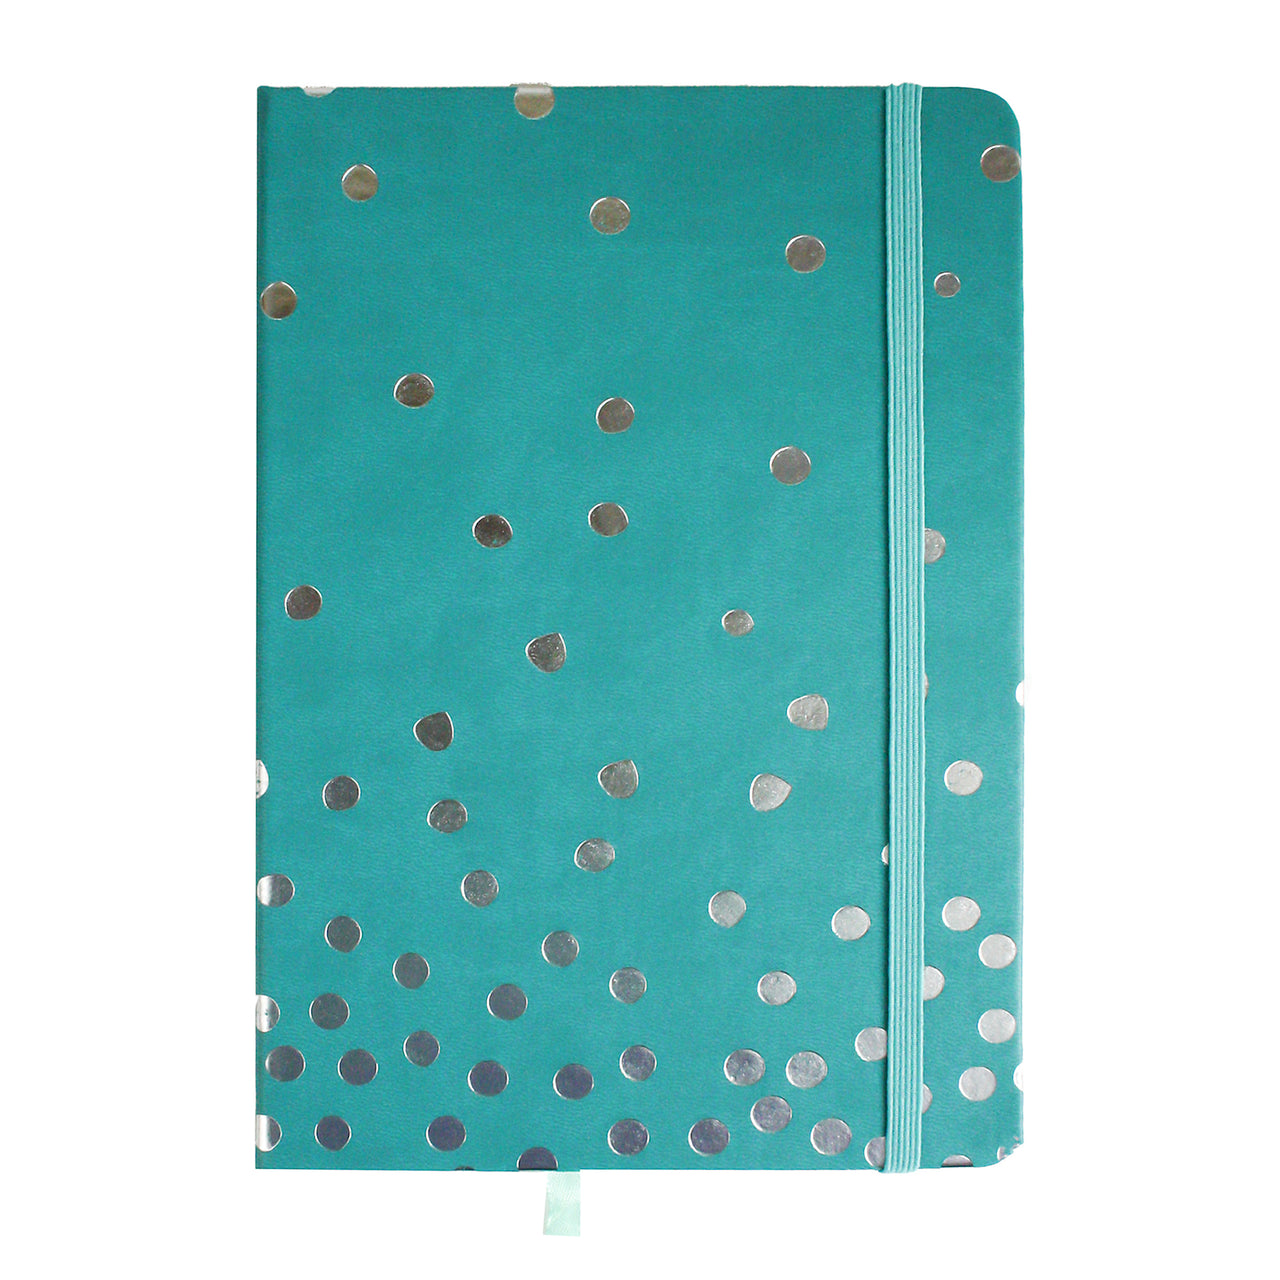 A5 Turquoise Silver Polka Dot Notebook - EMARTBUY